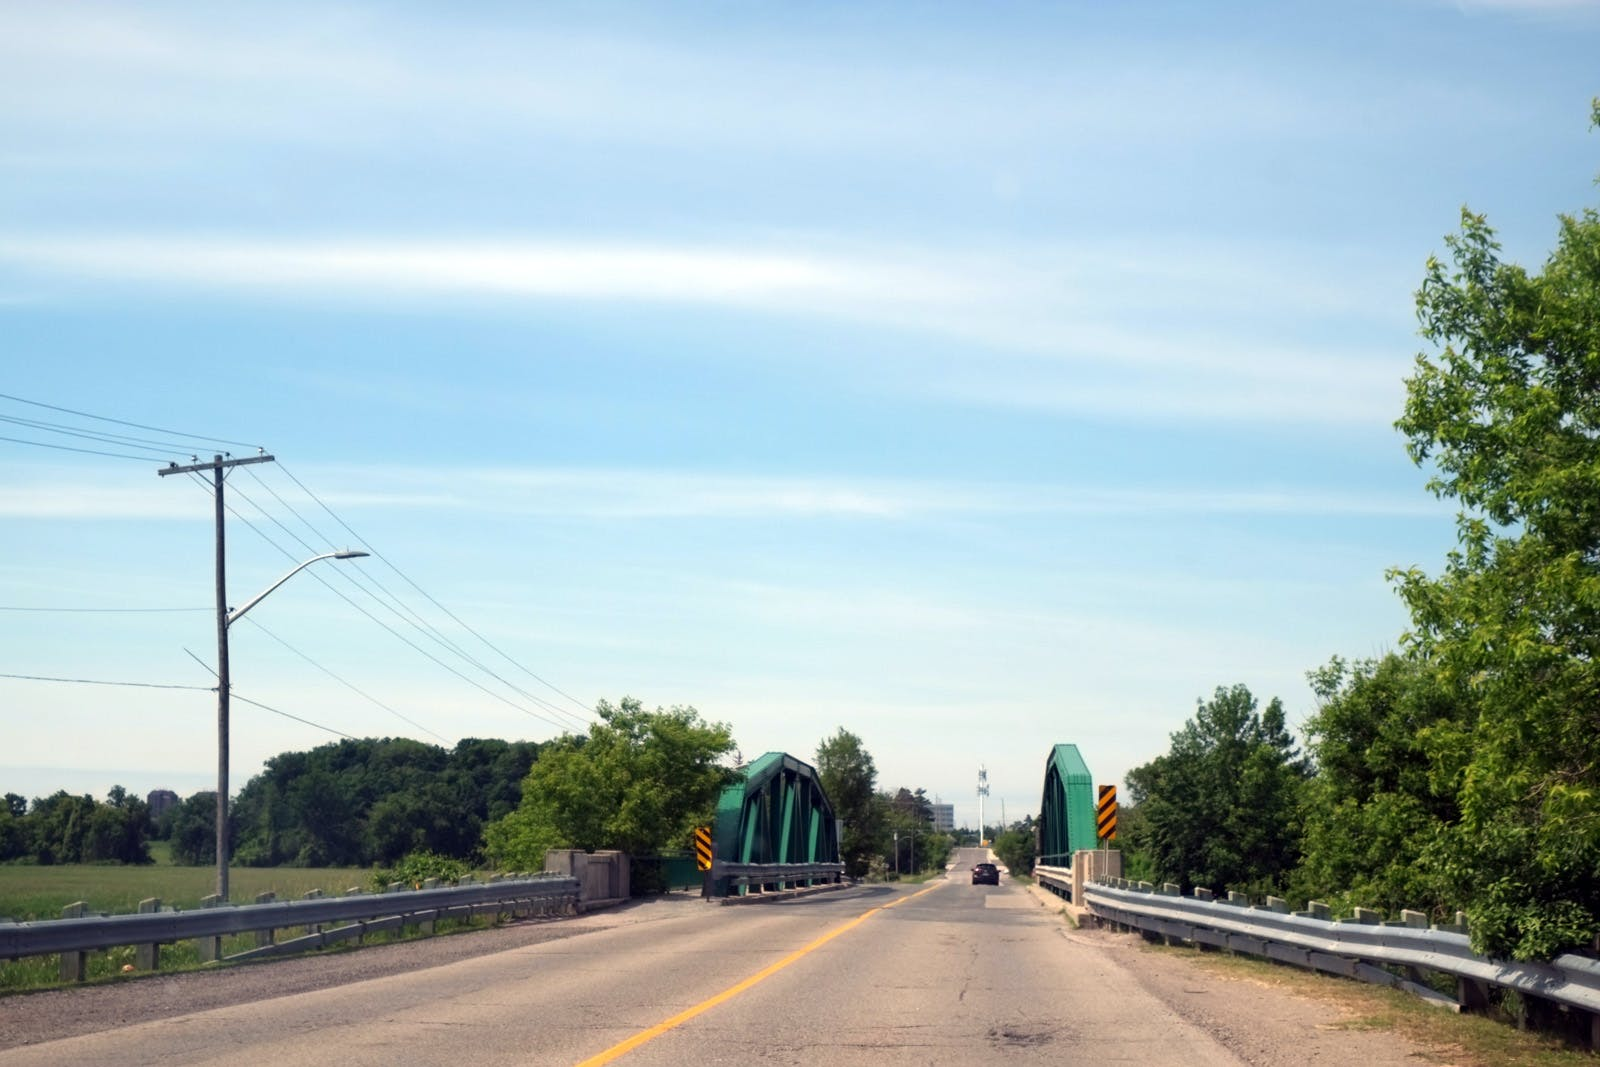 Views of the bridge carrying Old Derry Road over the Credit River